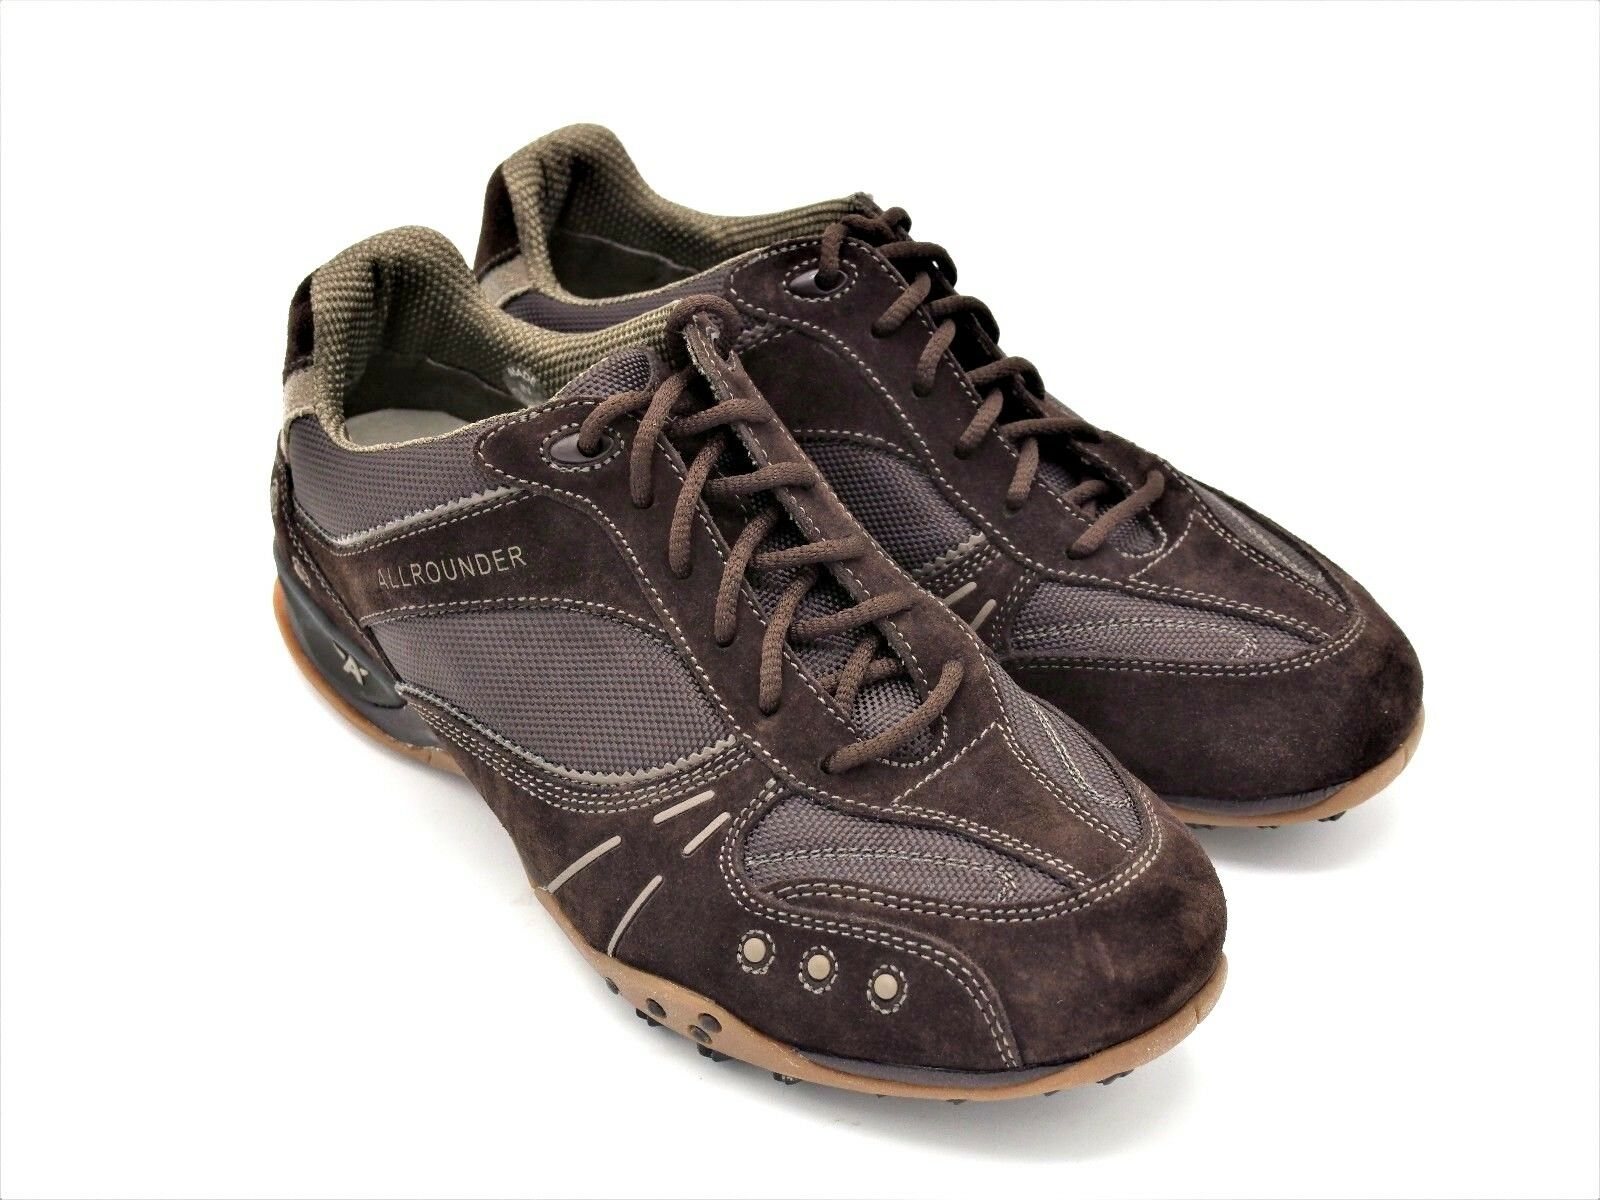 D604 New Men's Allrounder by Mephisto Kristel Brown Casual Lace Up Shoes 8 M